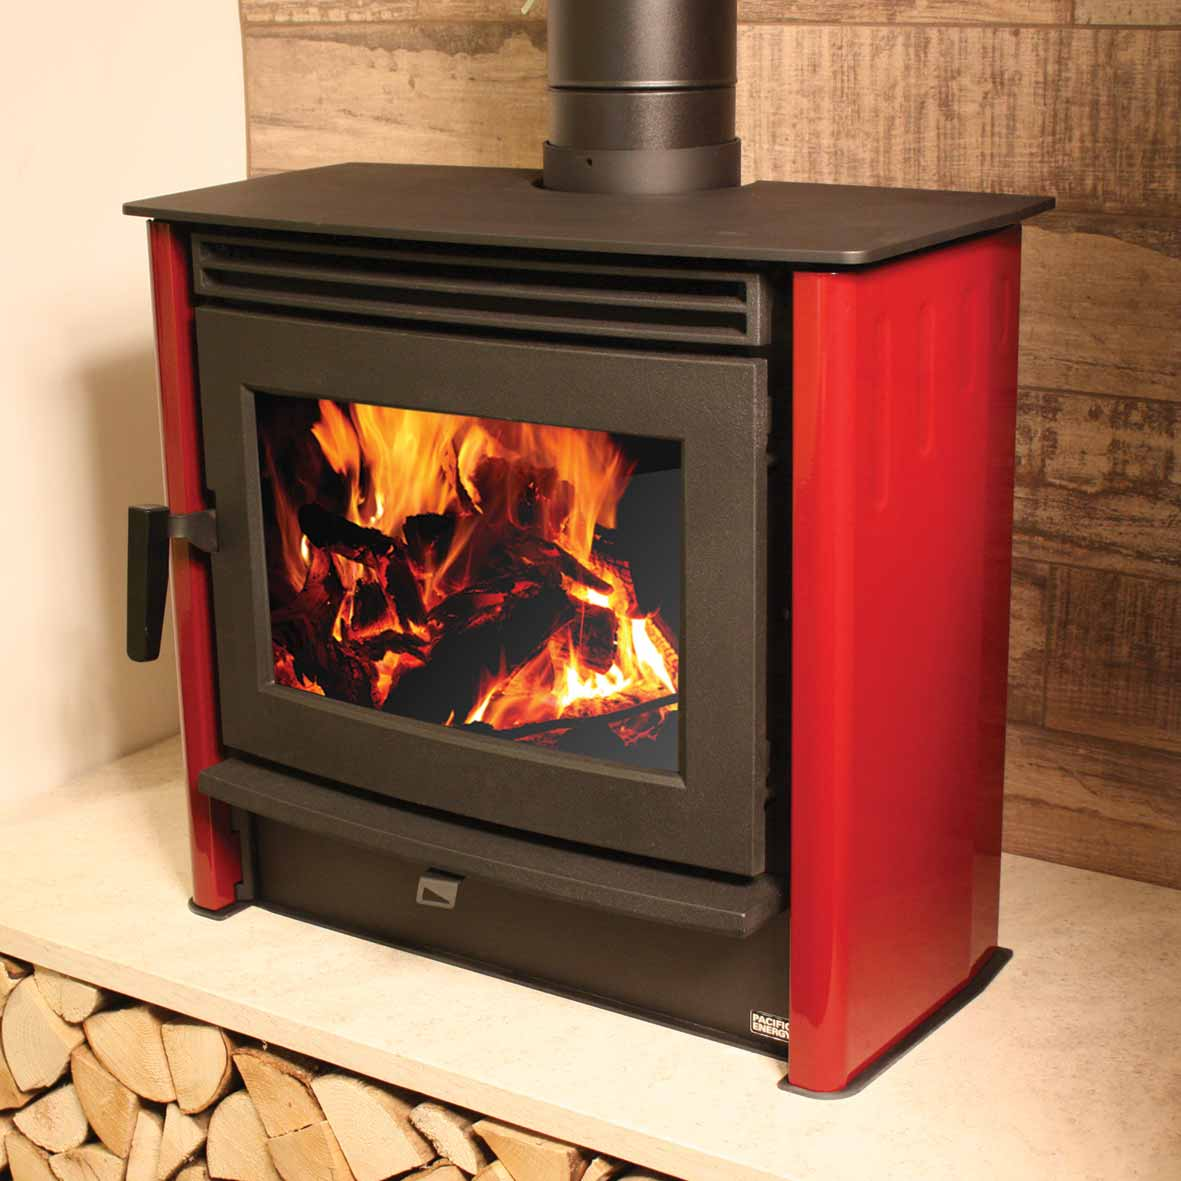 Red Wood Burning Stove 5kw Waxman Tile Showroom